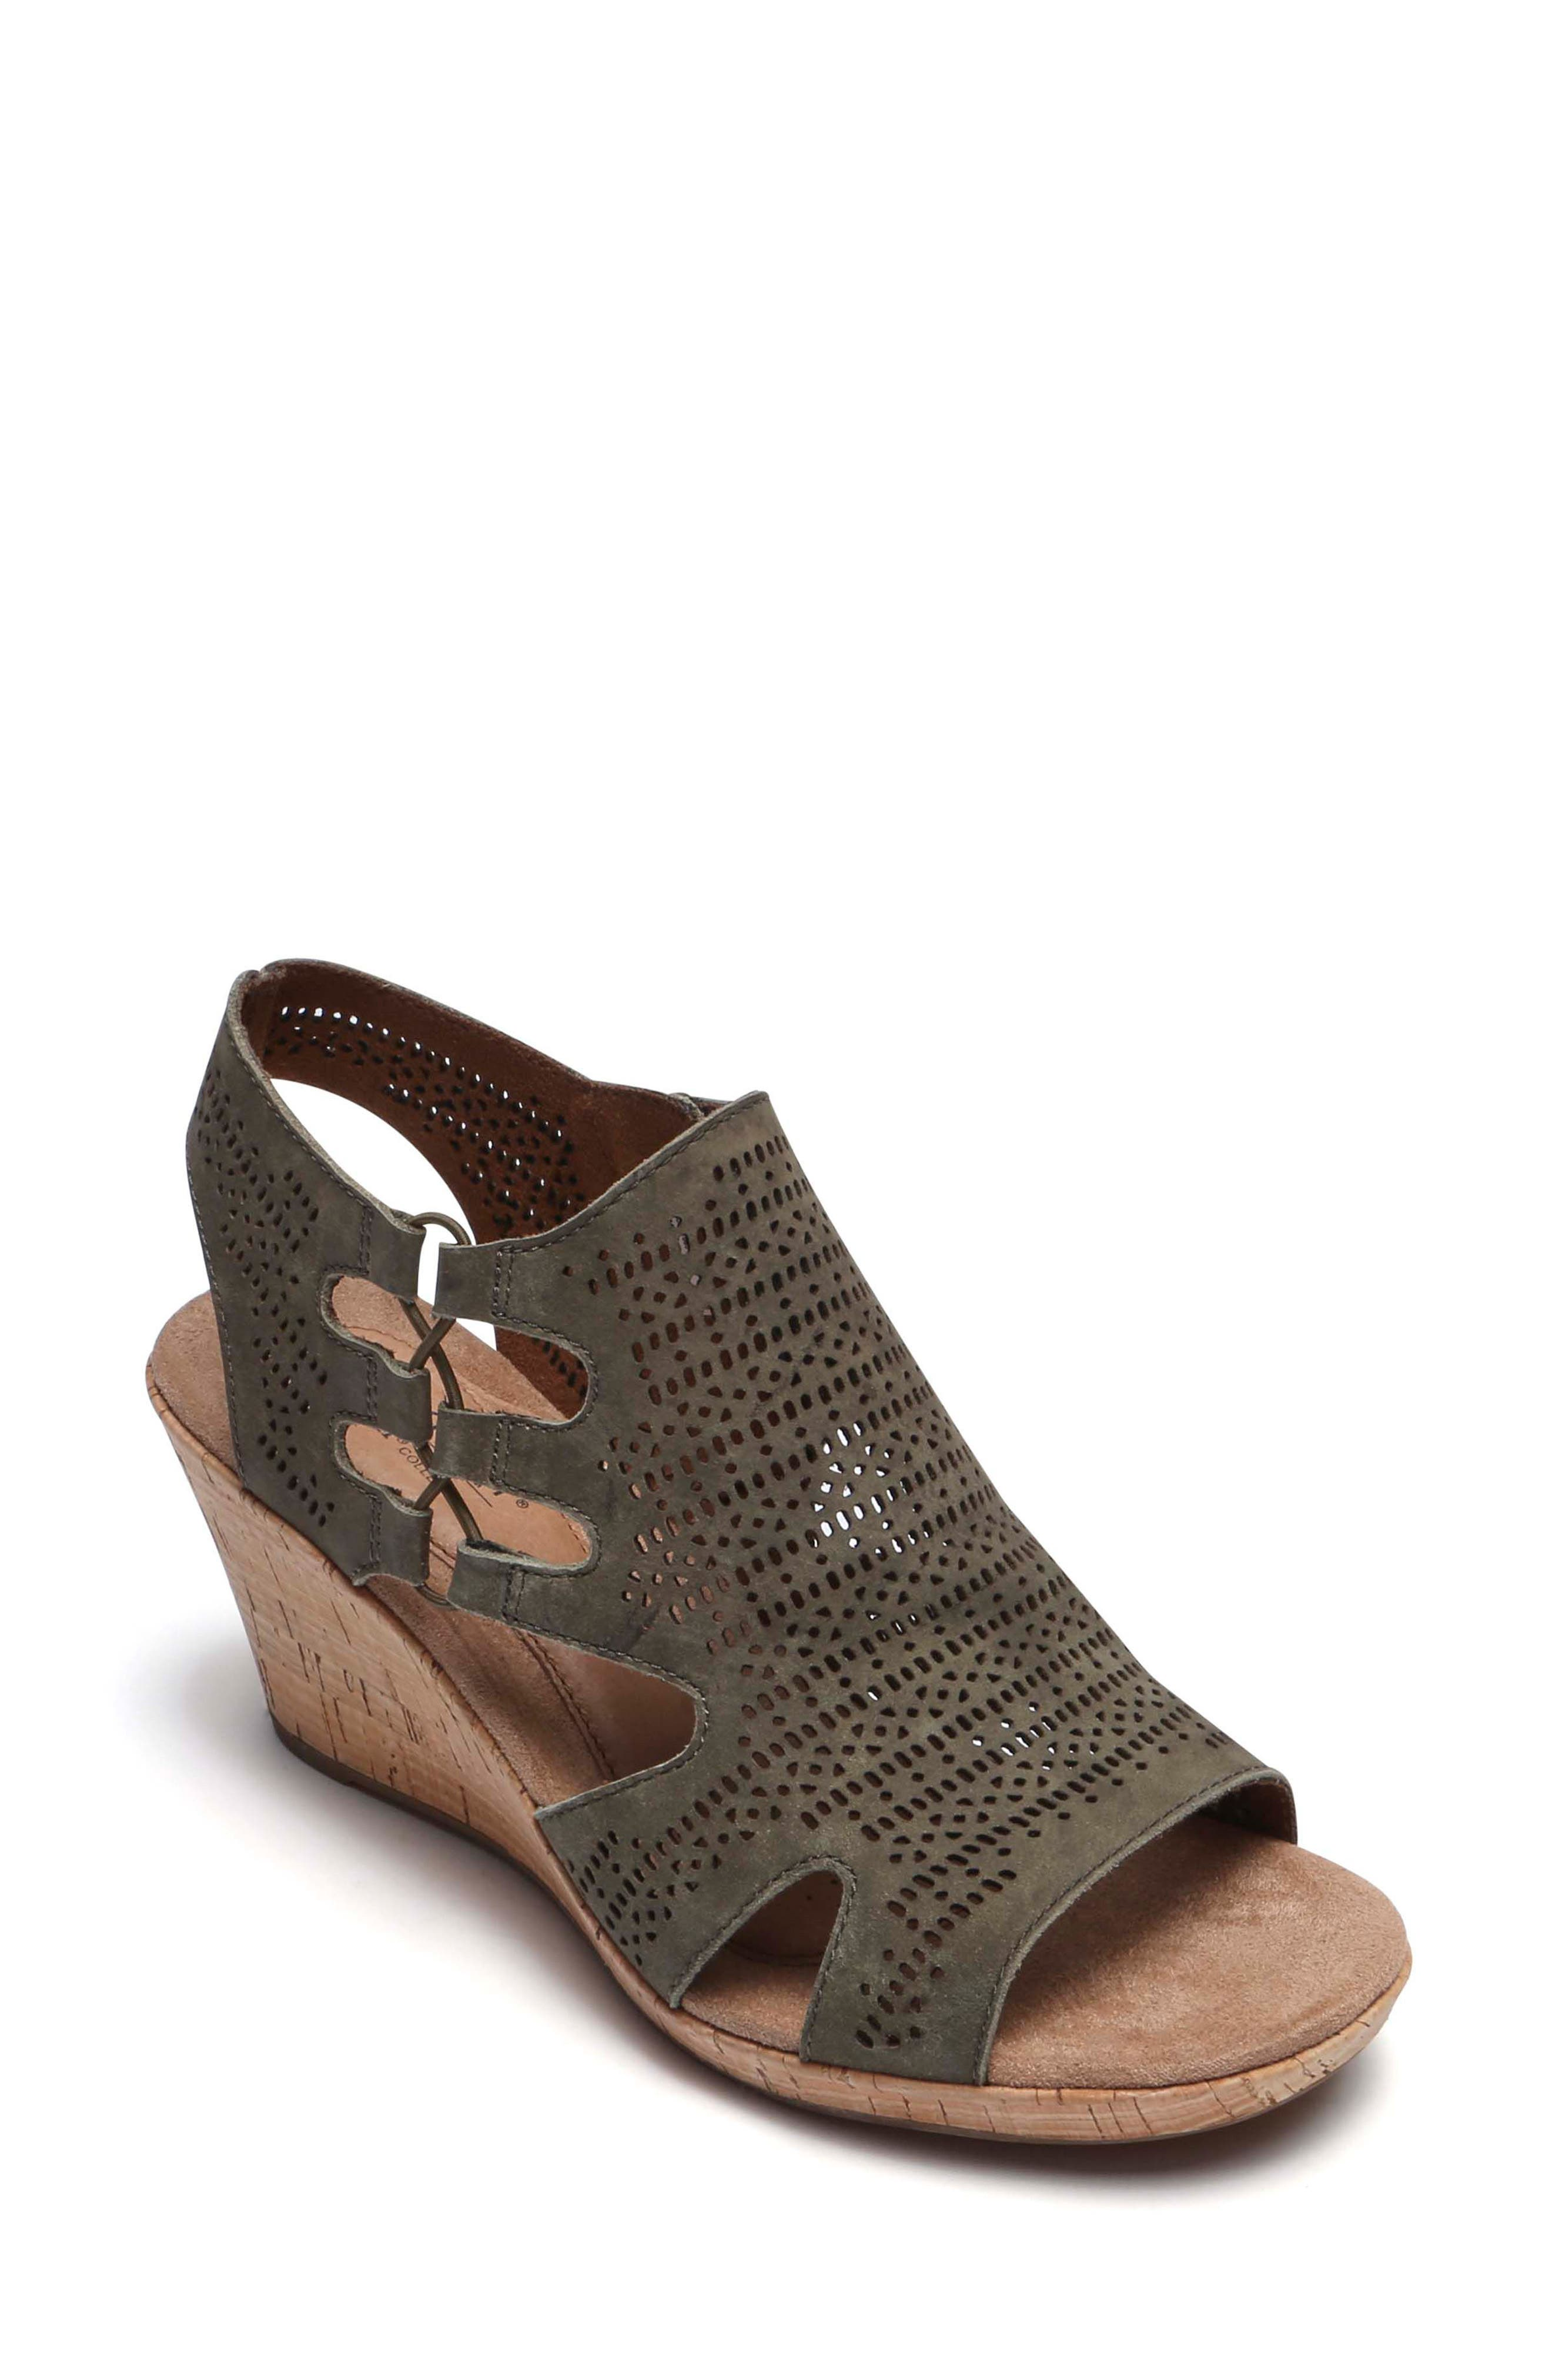 Janna Perforated Wedge Sandal,                         Main,                         color, Green Nubuck Leather